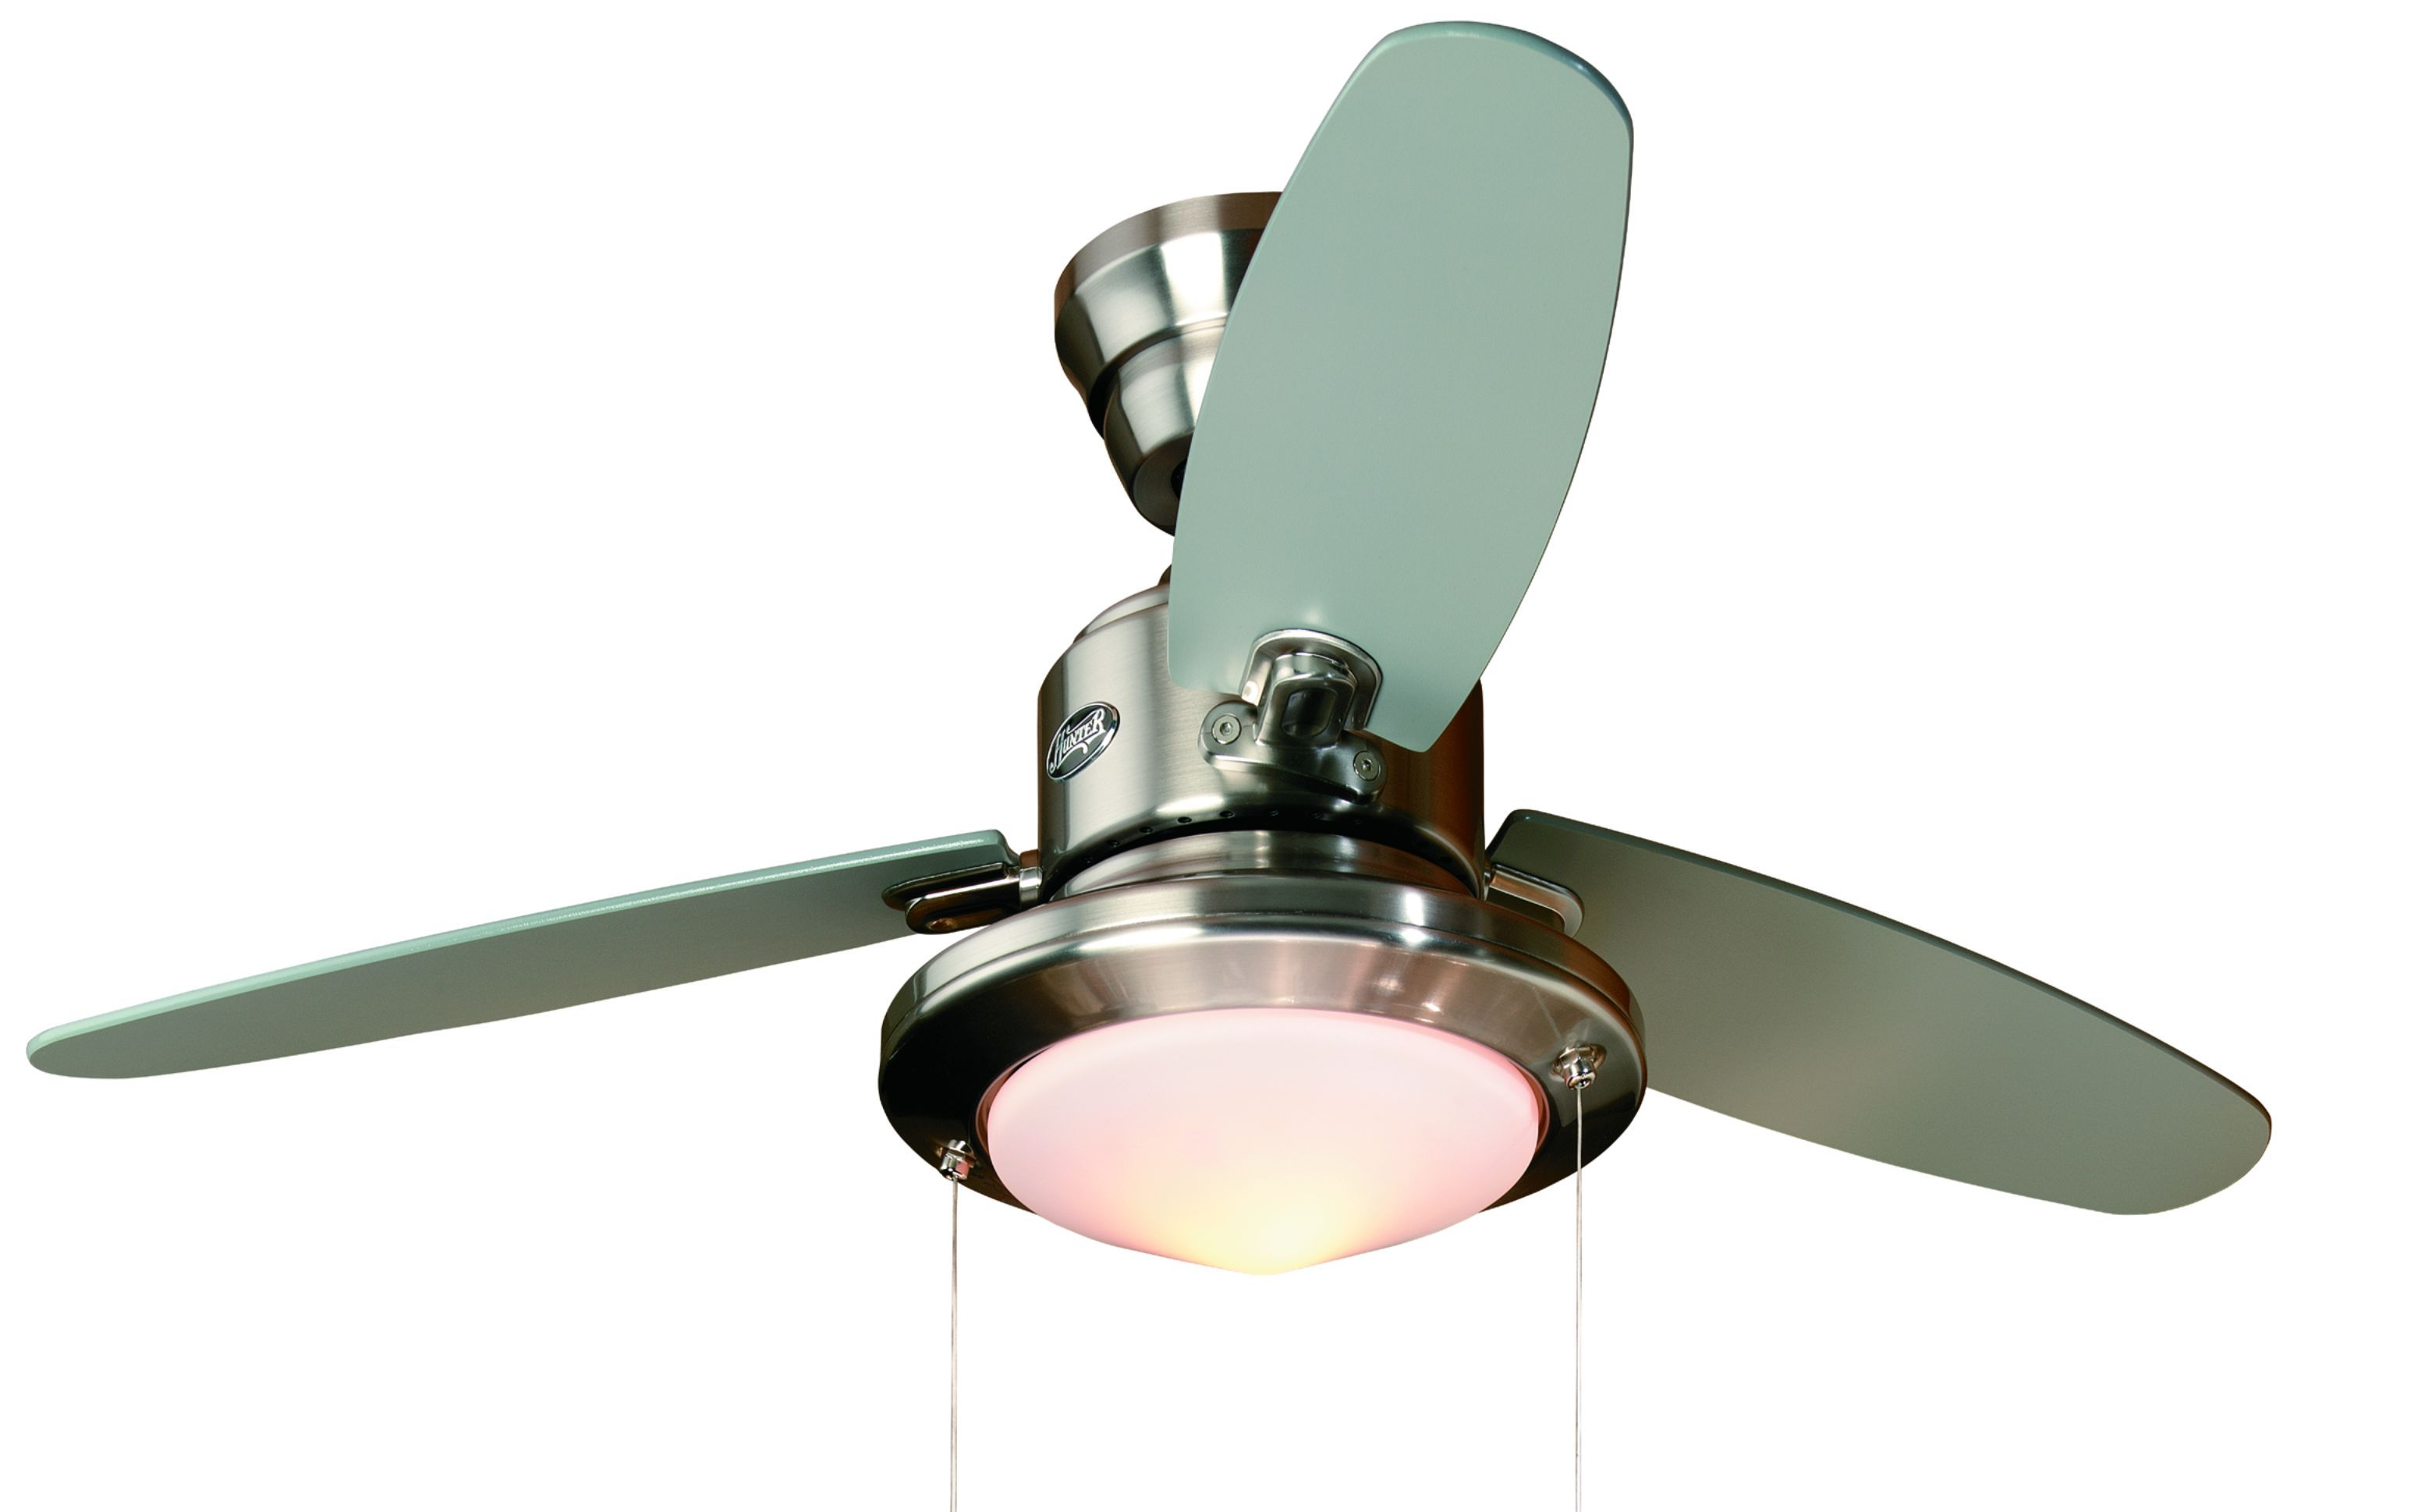 Interior affordable hunter ceiling fans parts online top hunter interior affordable hunter ceiling fans parts online top hunter ceiling fans troubleshooting pull cord endearing photos aloadofball Images